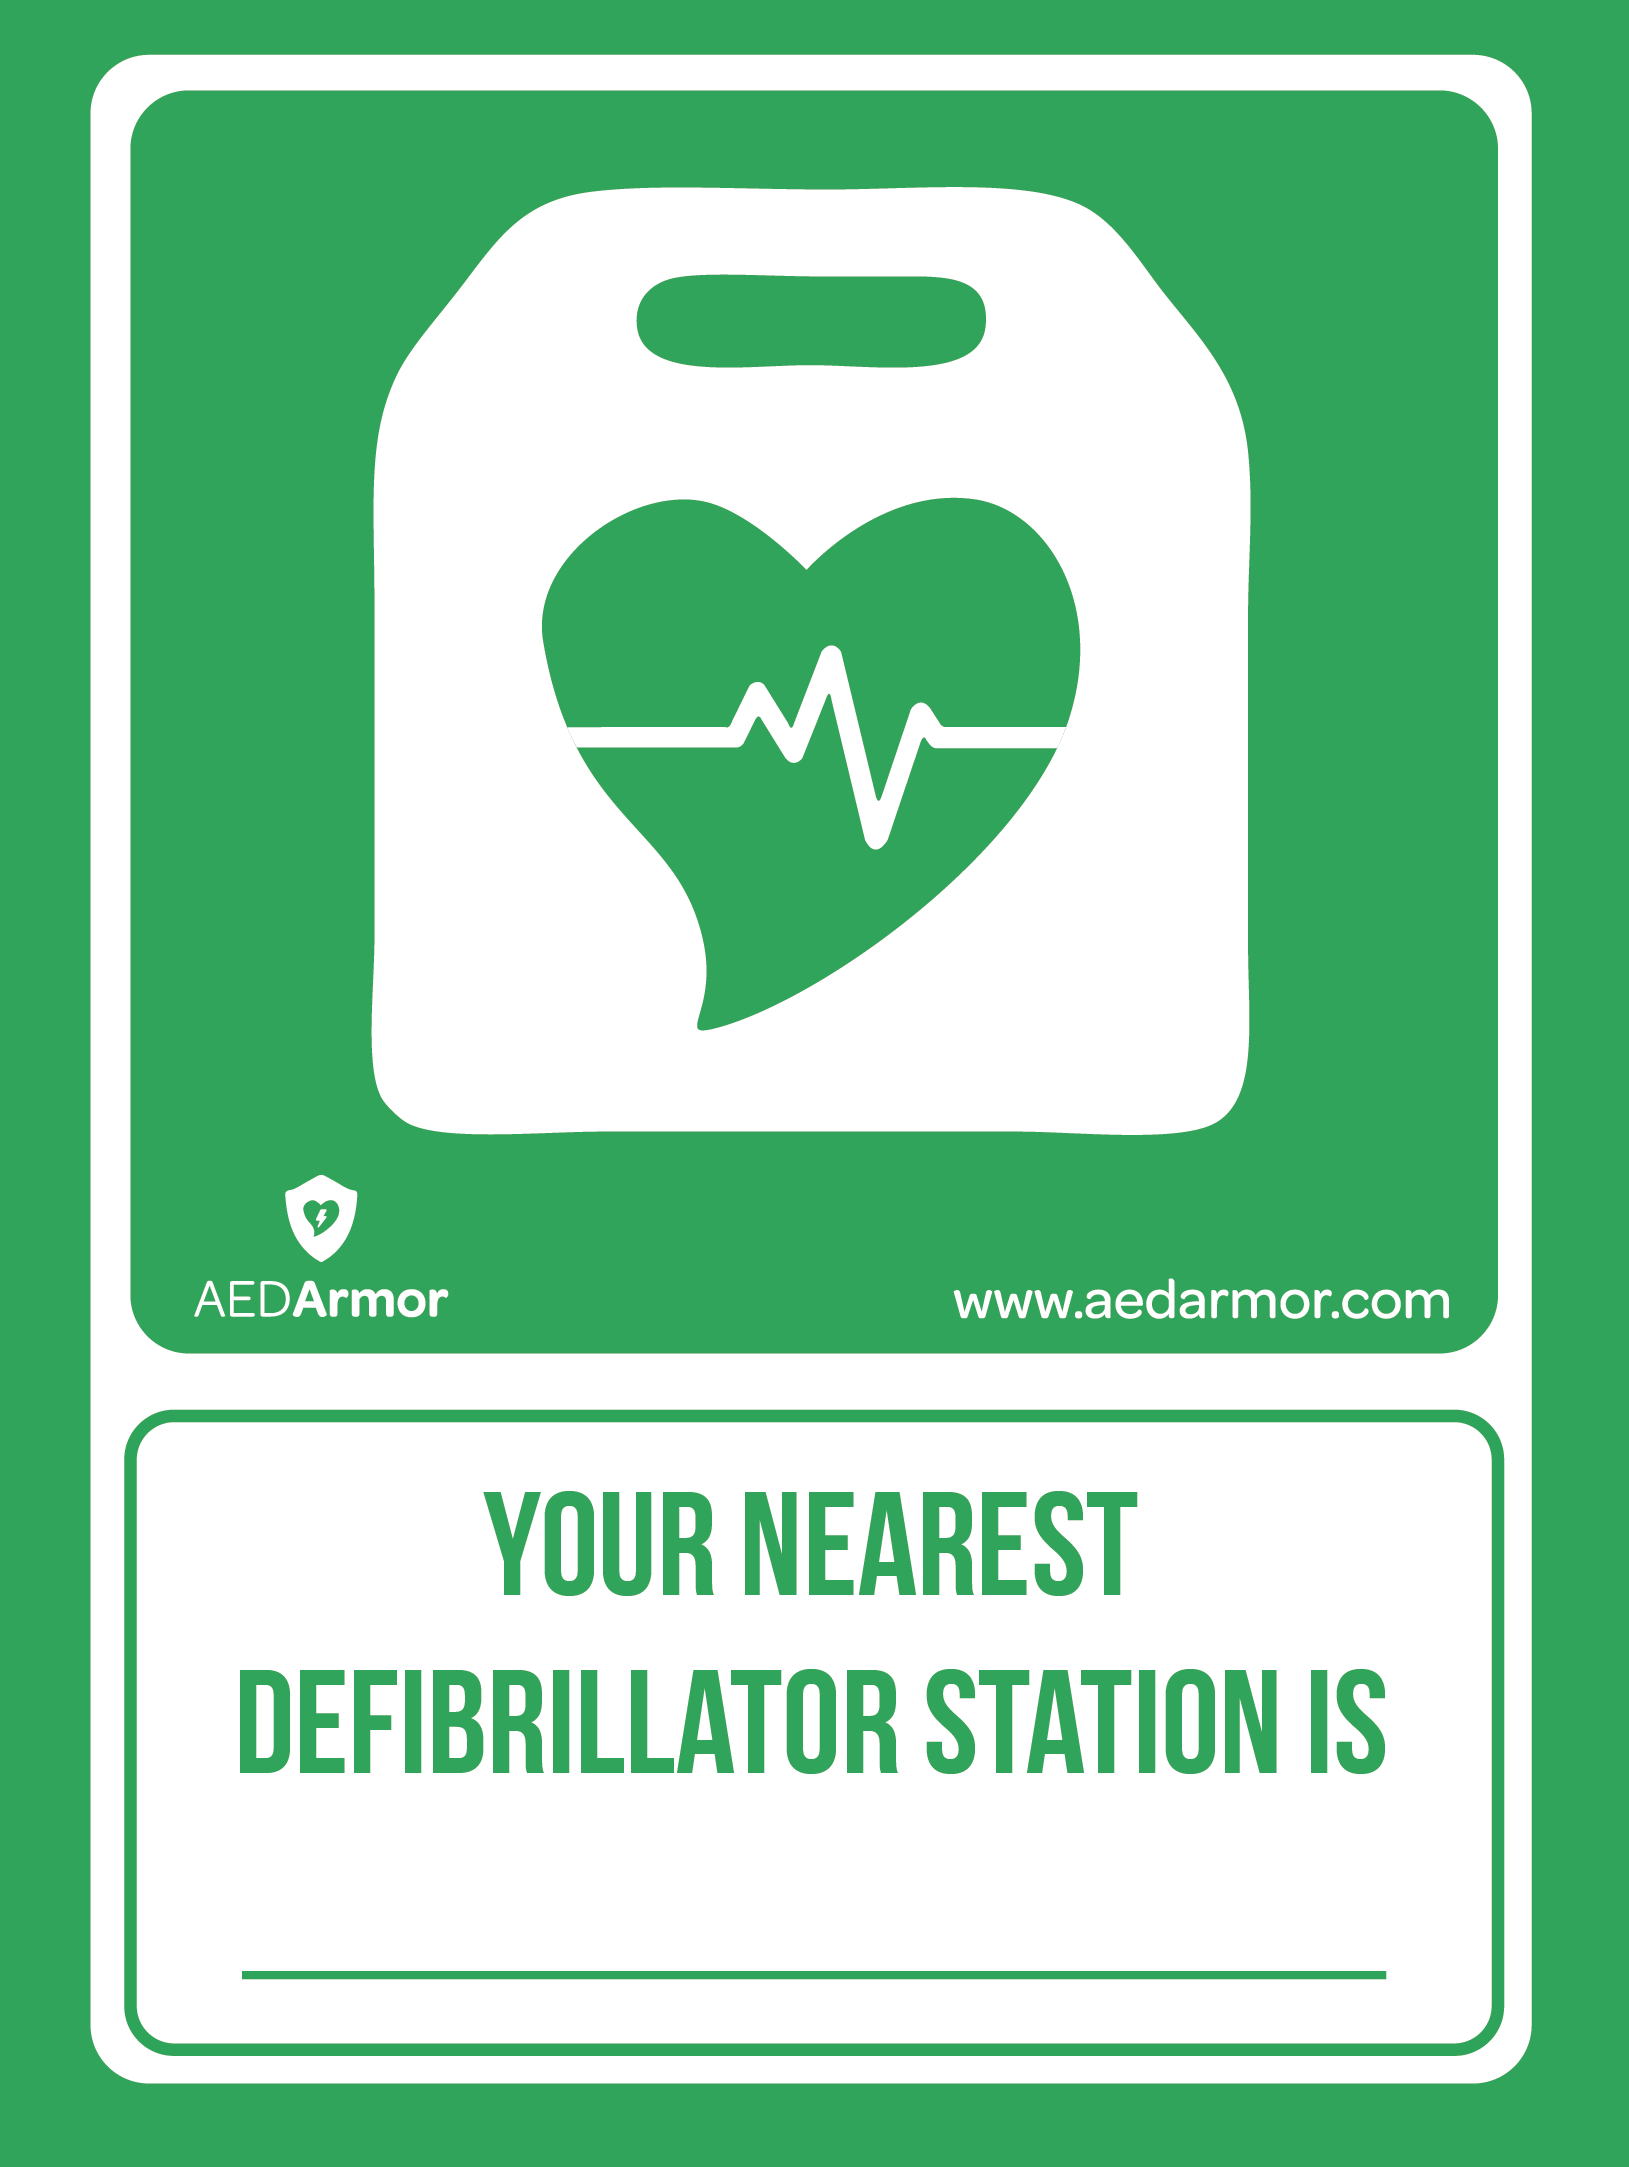 AED Armor 'Your Nearest Defibrillator Station' Poster